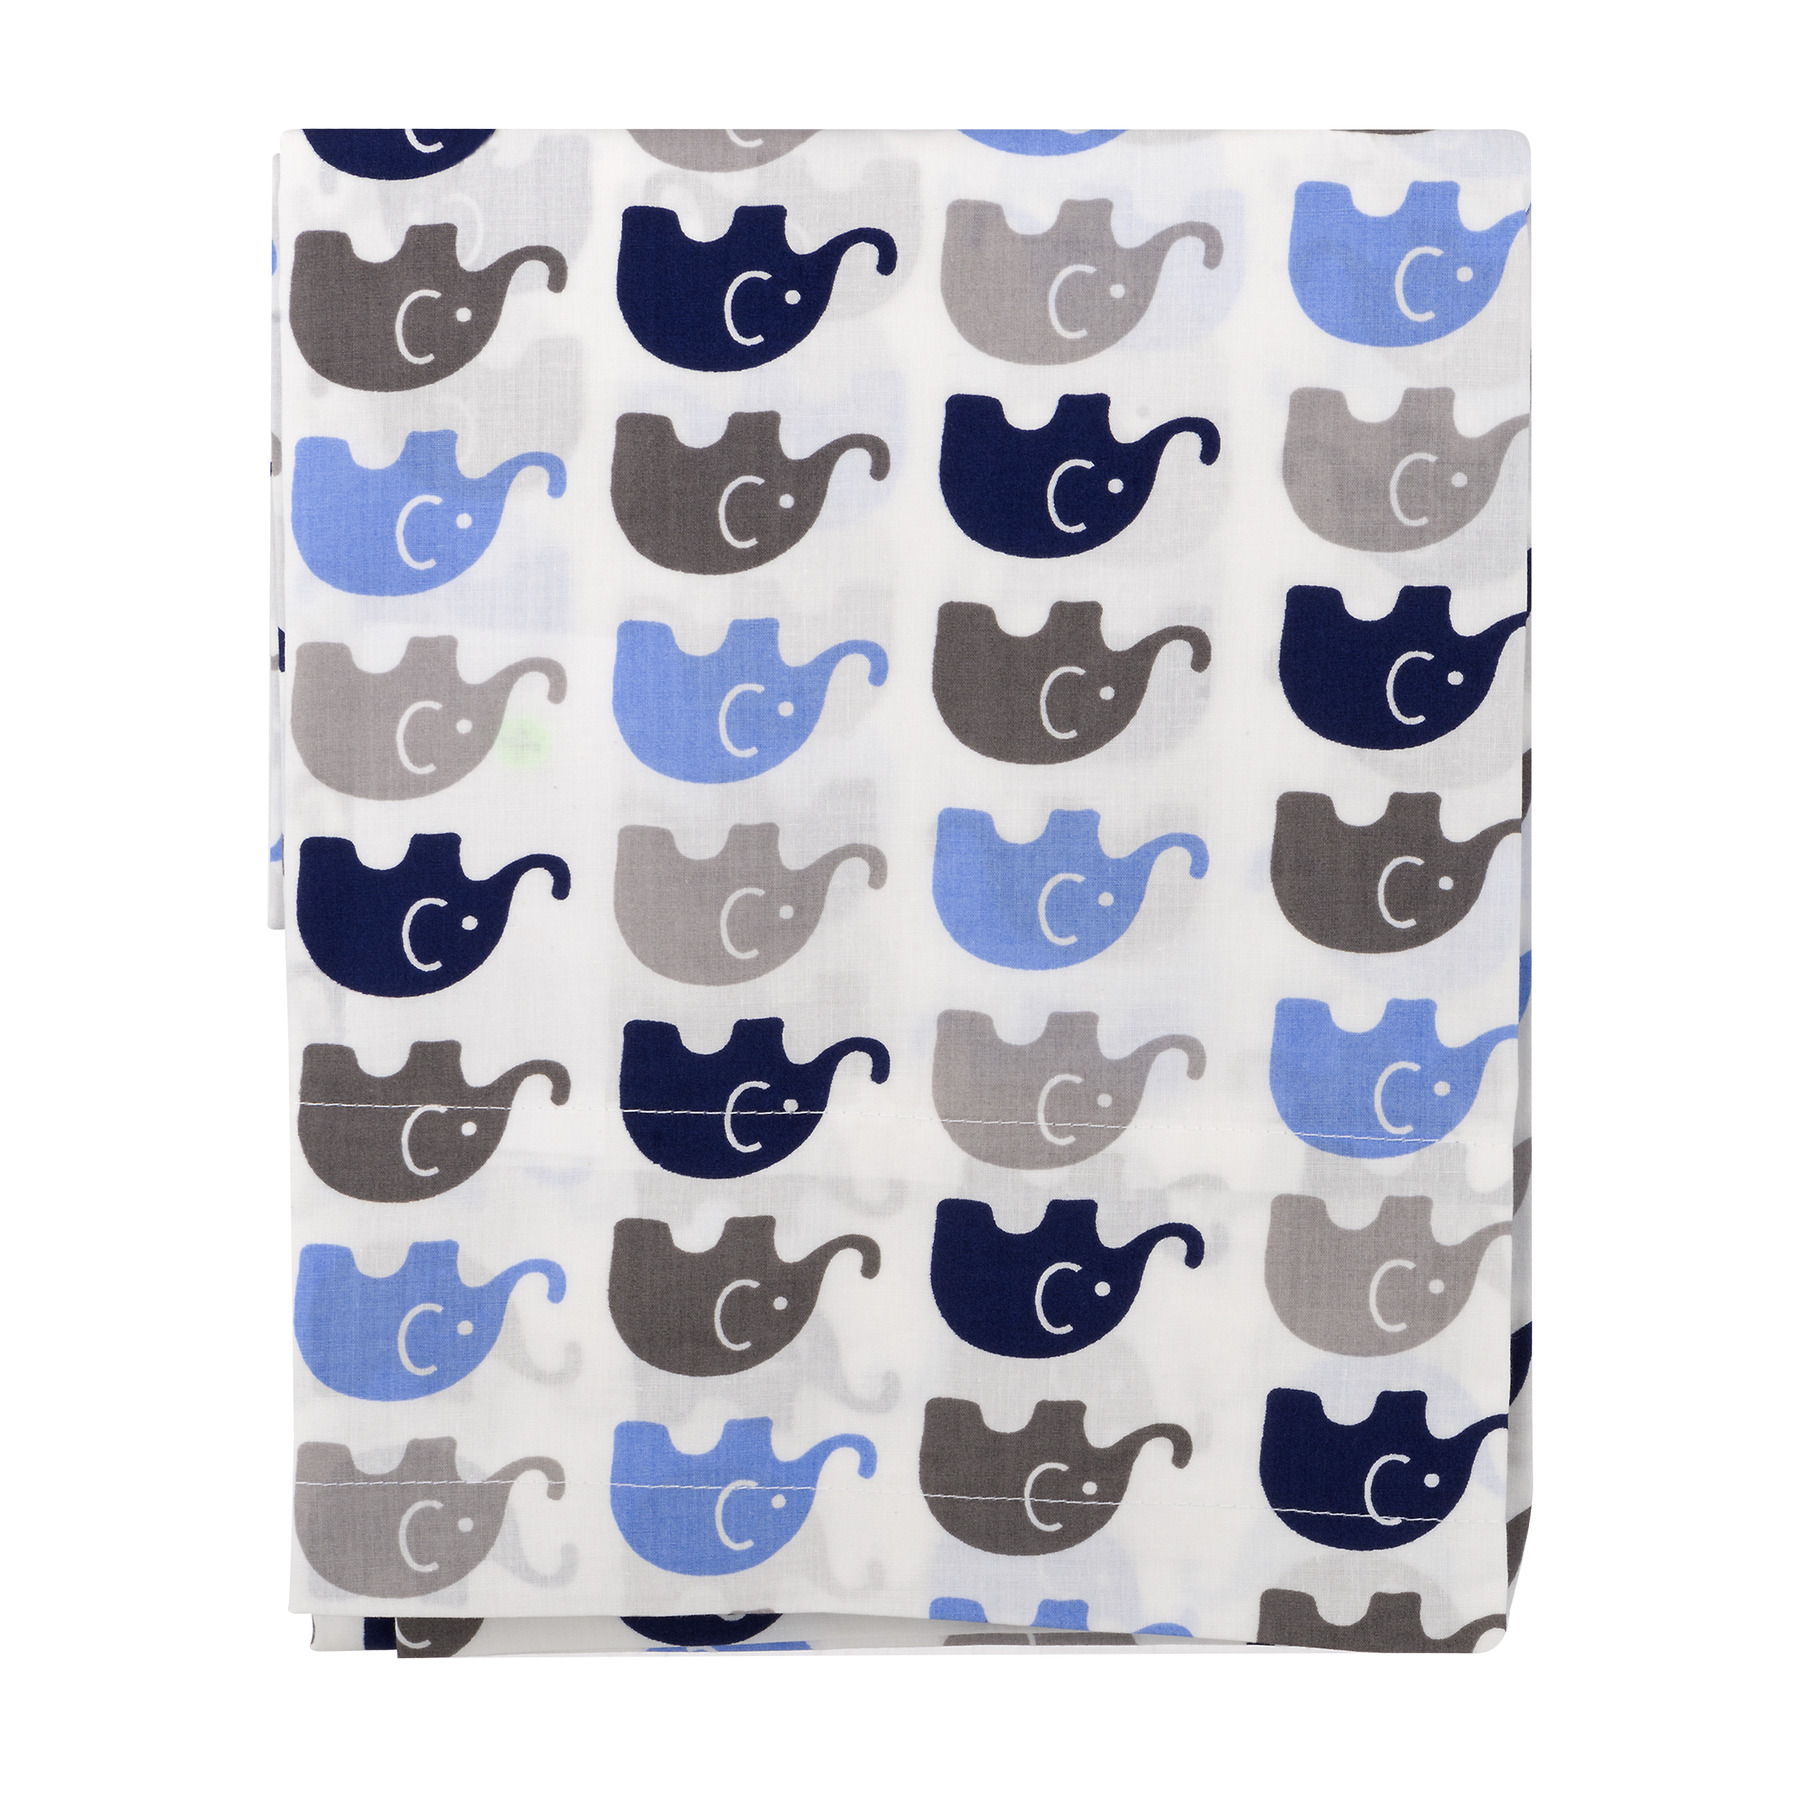 Bacati Curtain Panel Blue/Grey Mini Elephants, 1.0 CT